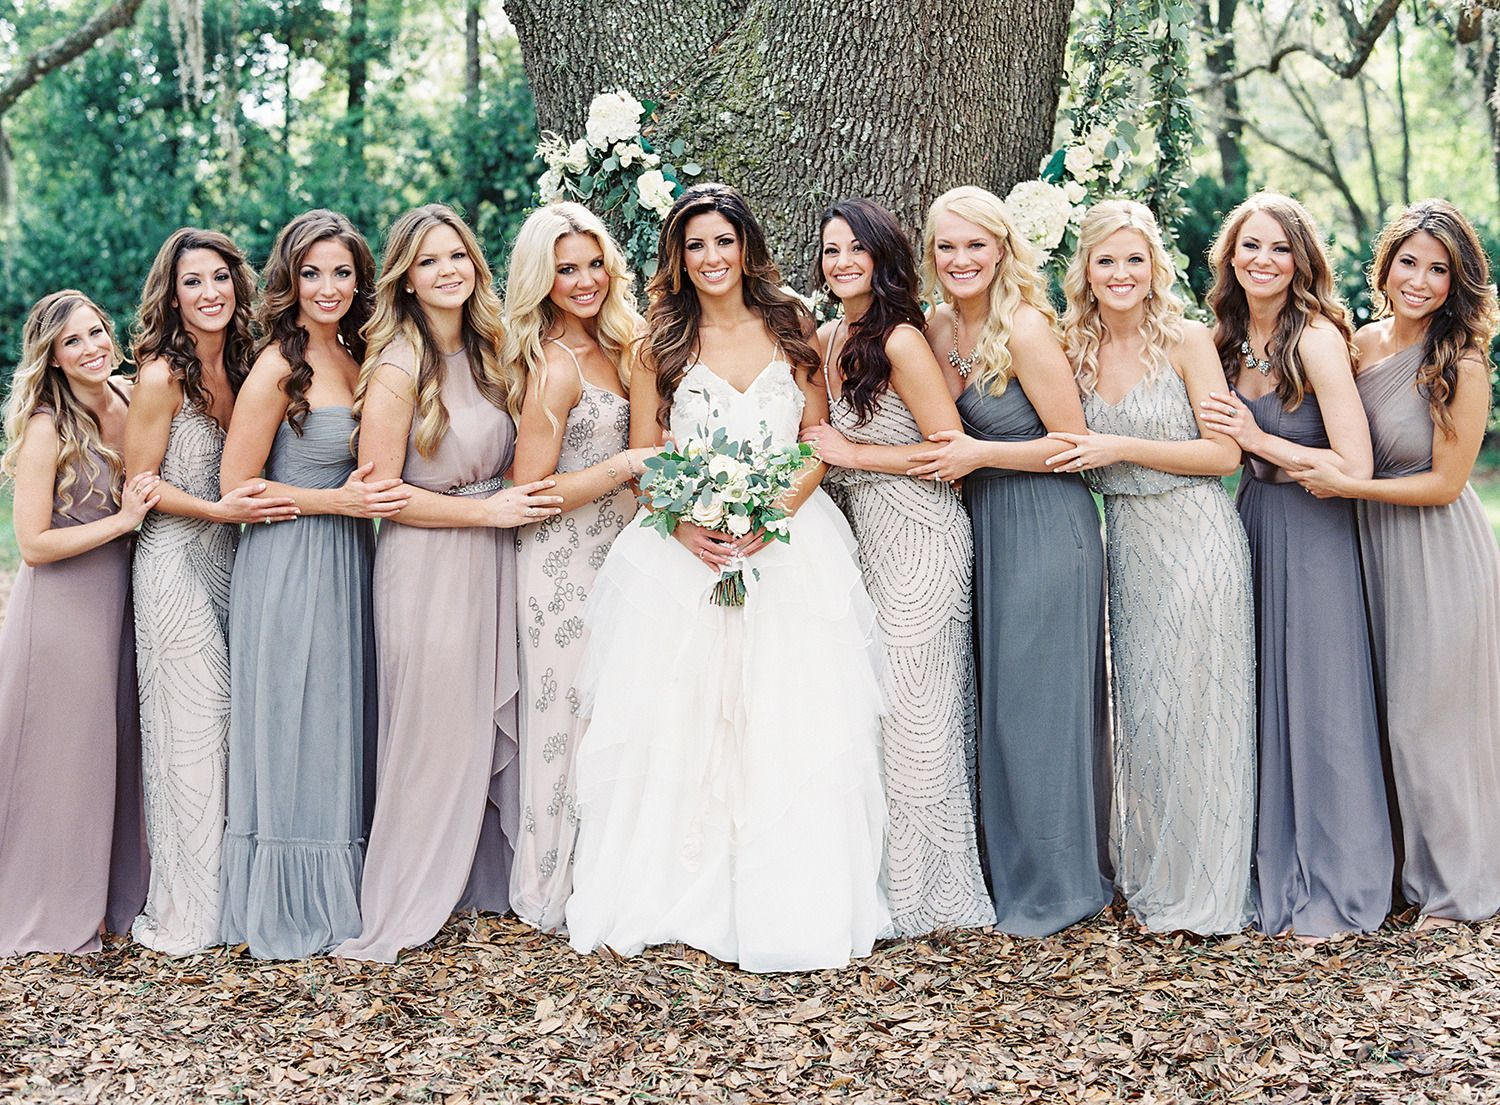 Wedding Grey Bridesmaid Dress 17 best ideas about grey bridesmaid dresses on pinterest allure photography lauren peele www laurenpeelephotography com wedding dress hayley paige